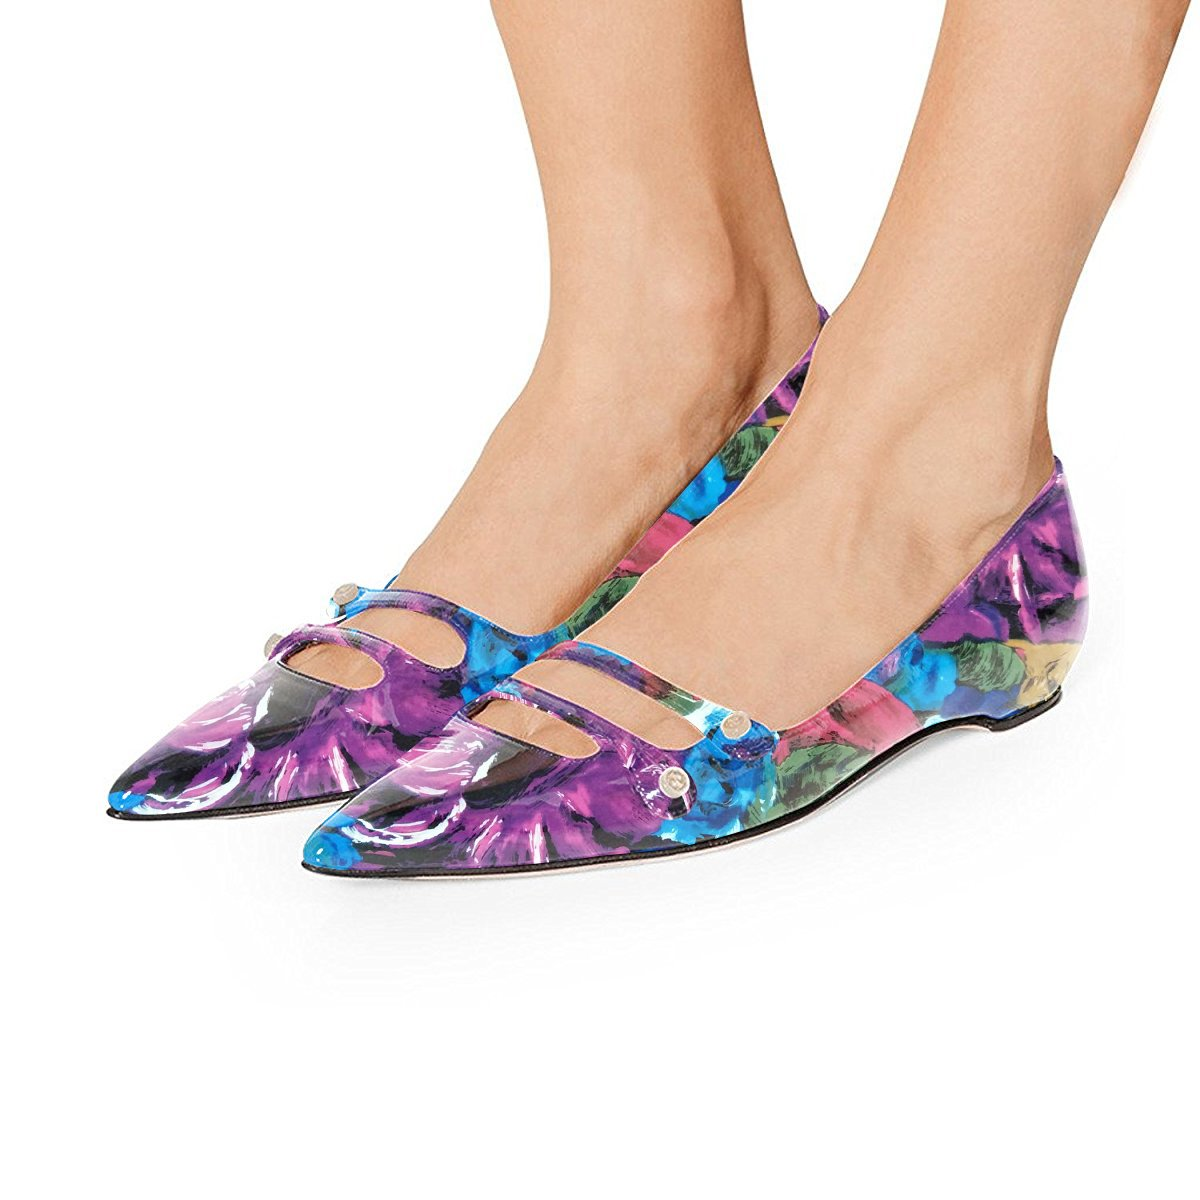 YDN Women Pointed Toe Slip on Flats Hidden Low Heels Pumps Comfort Shoes with Straps B07F81YKCL 12 M US|Purple Floral